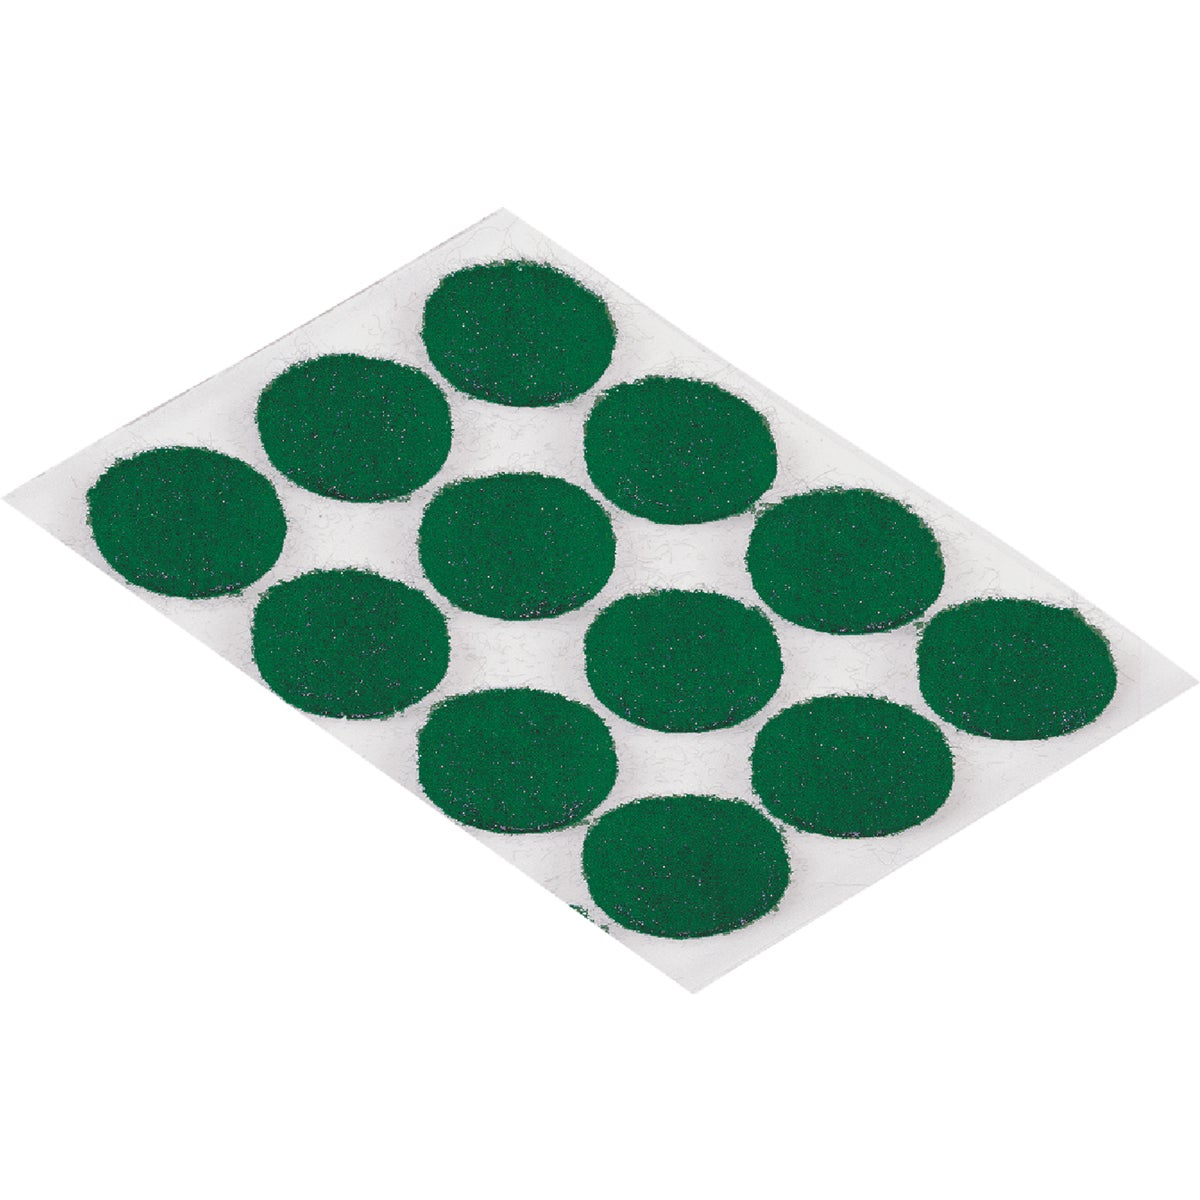 "3/8"" GREEN FELT PAD - 227684 by Shepherd Hardware"